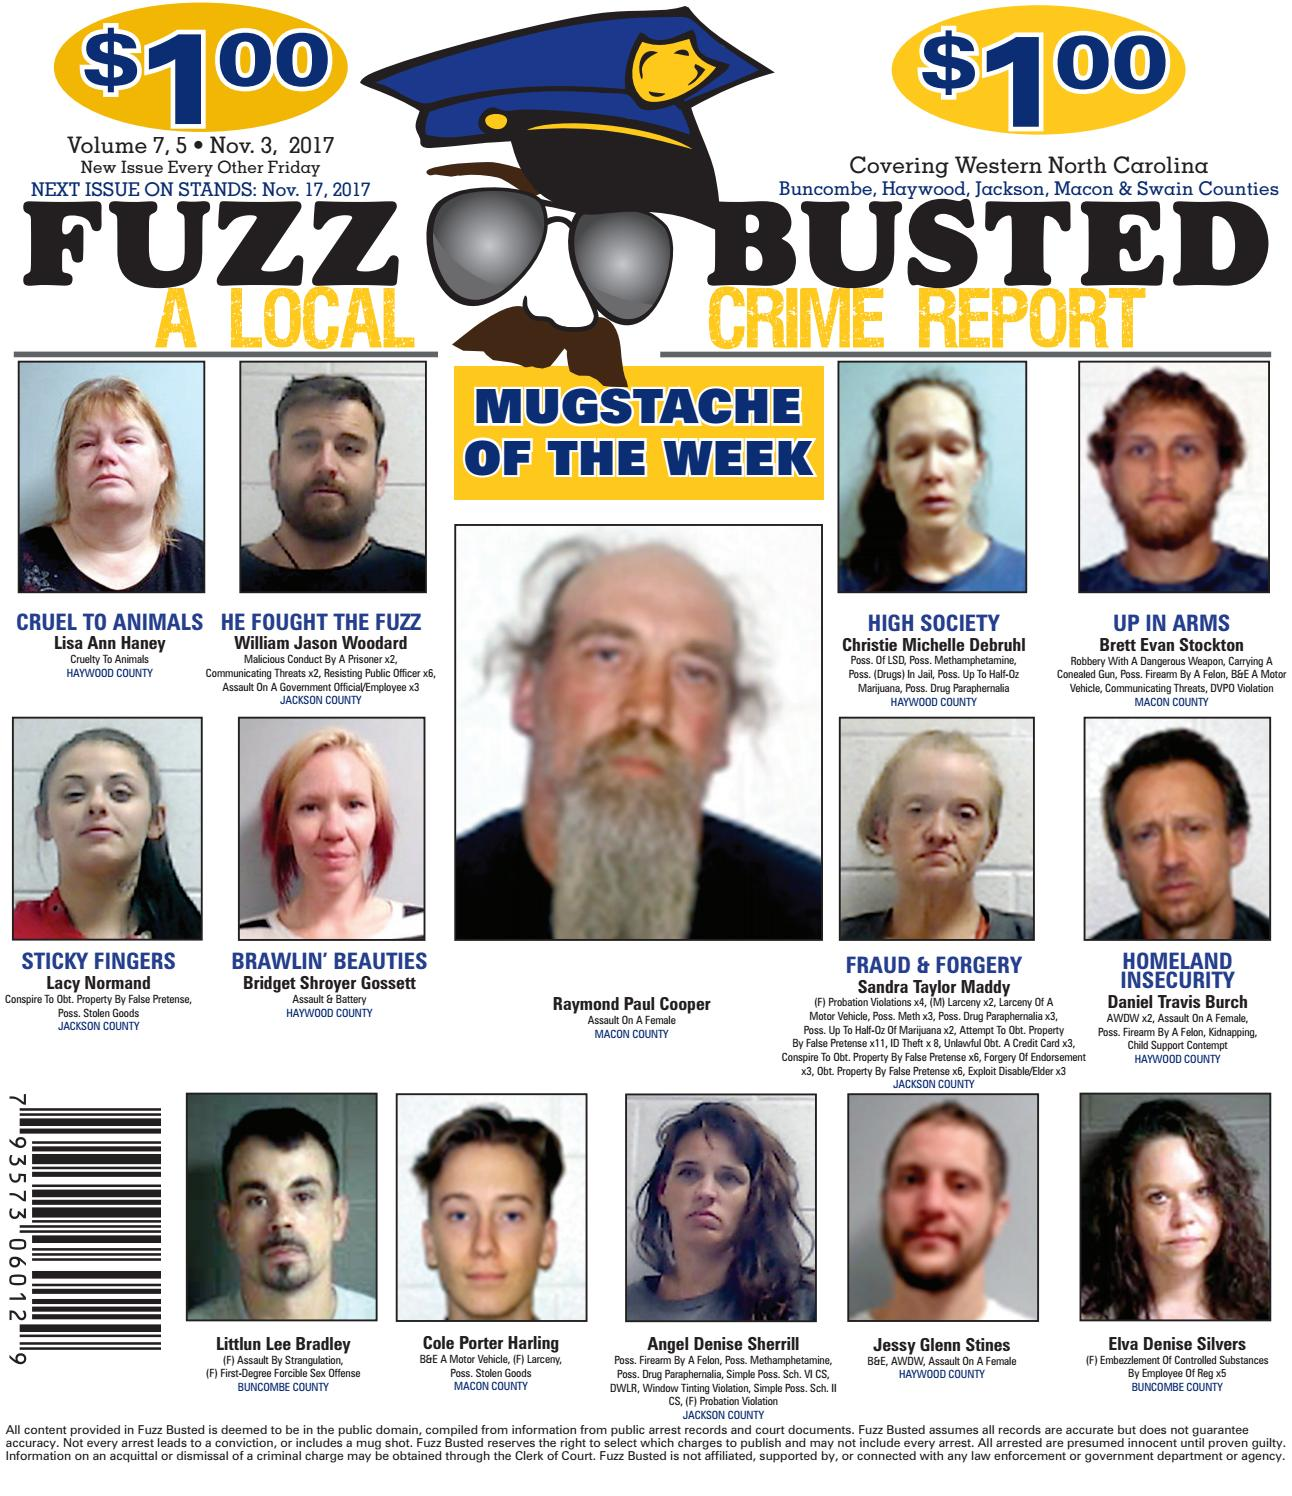 Volume 7 Issue 5 • November 3, 2017 by Fuzz Busted - issuu